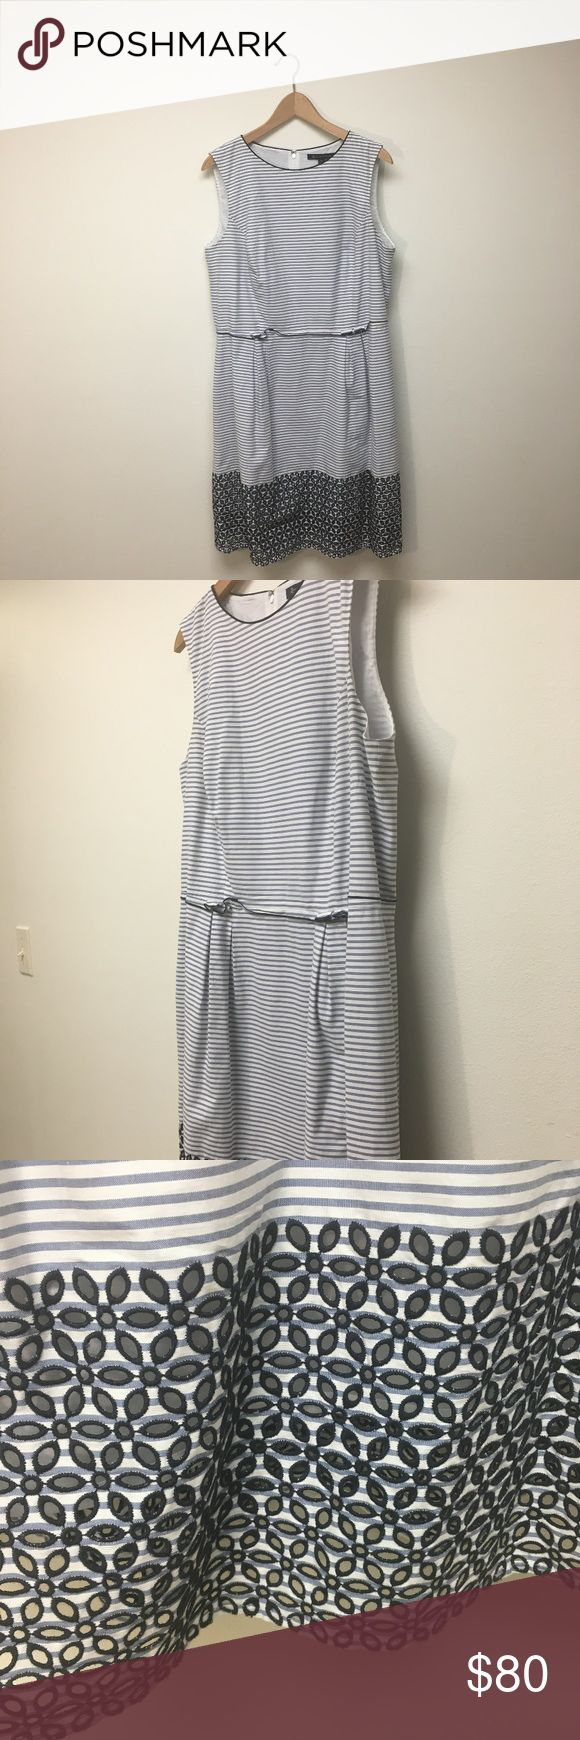 Striped Brooks Brothers Cotton Dress This high quality white and navy striped dress has beautiful detailing. Its a cotton dress that is versatile for both winter and summer. Brooks Brothers Dresses Mini